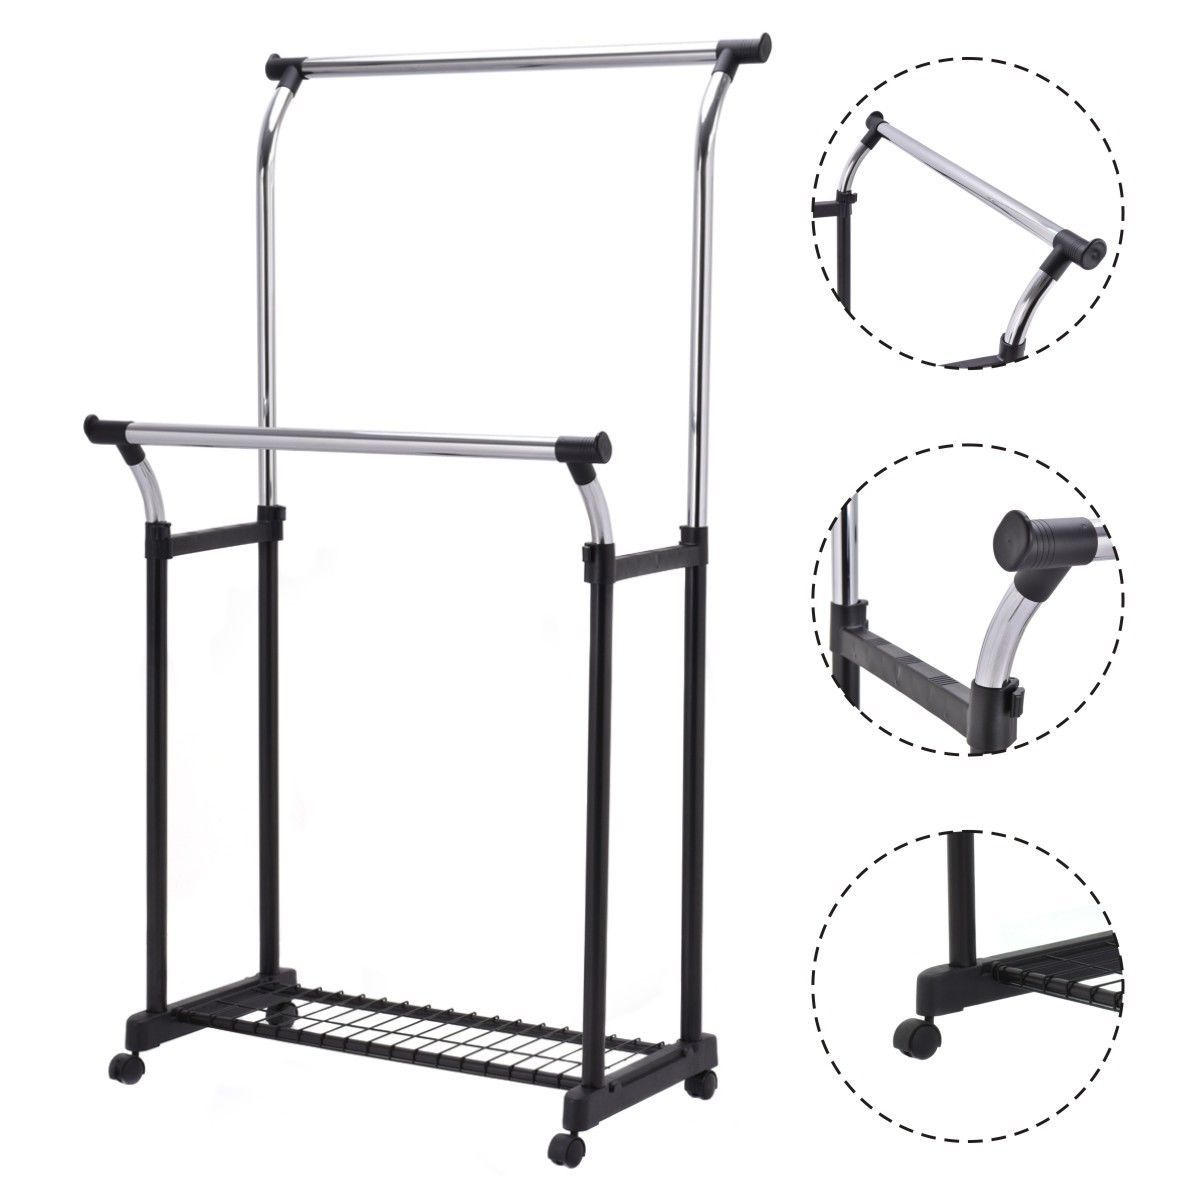 Double Rail Adjustable Garment Rack Rolling Clothes Hanger W Shoe Portable